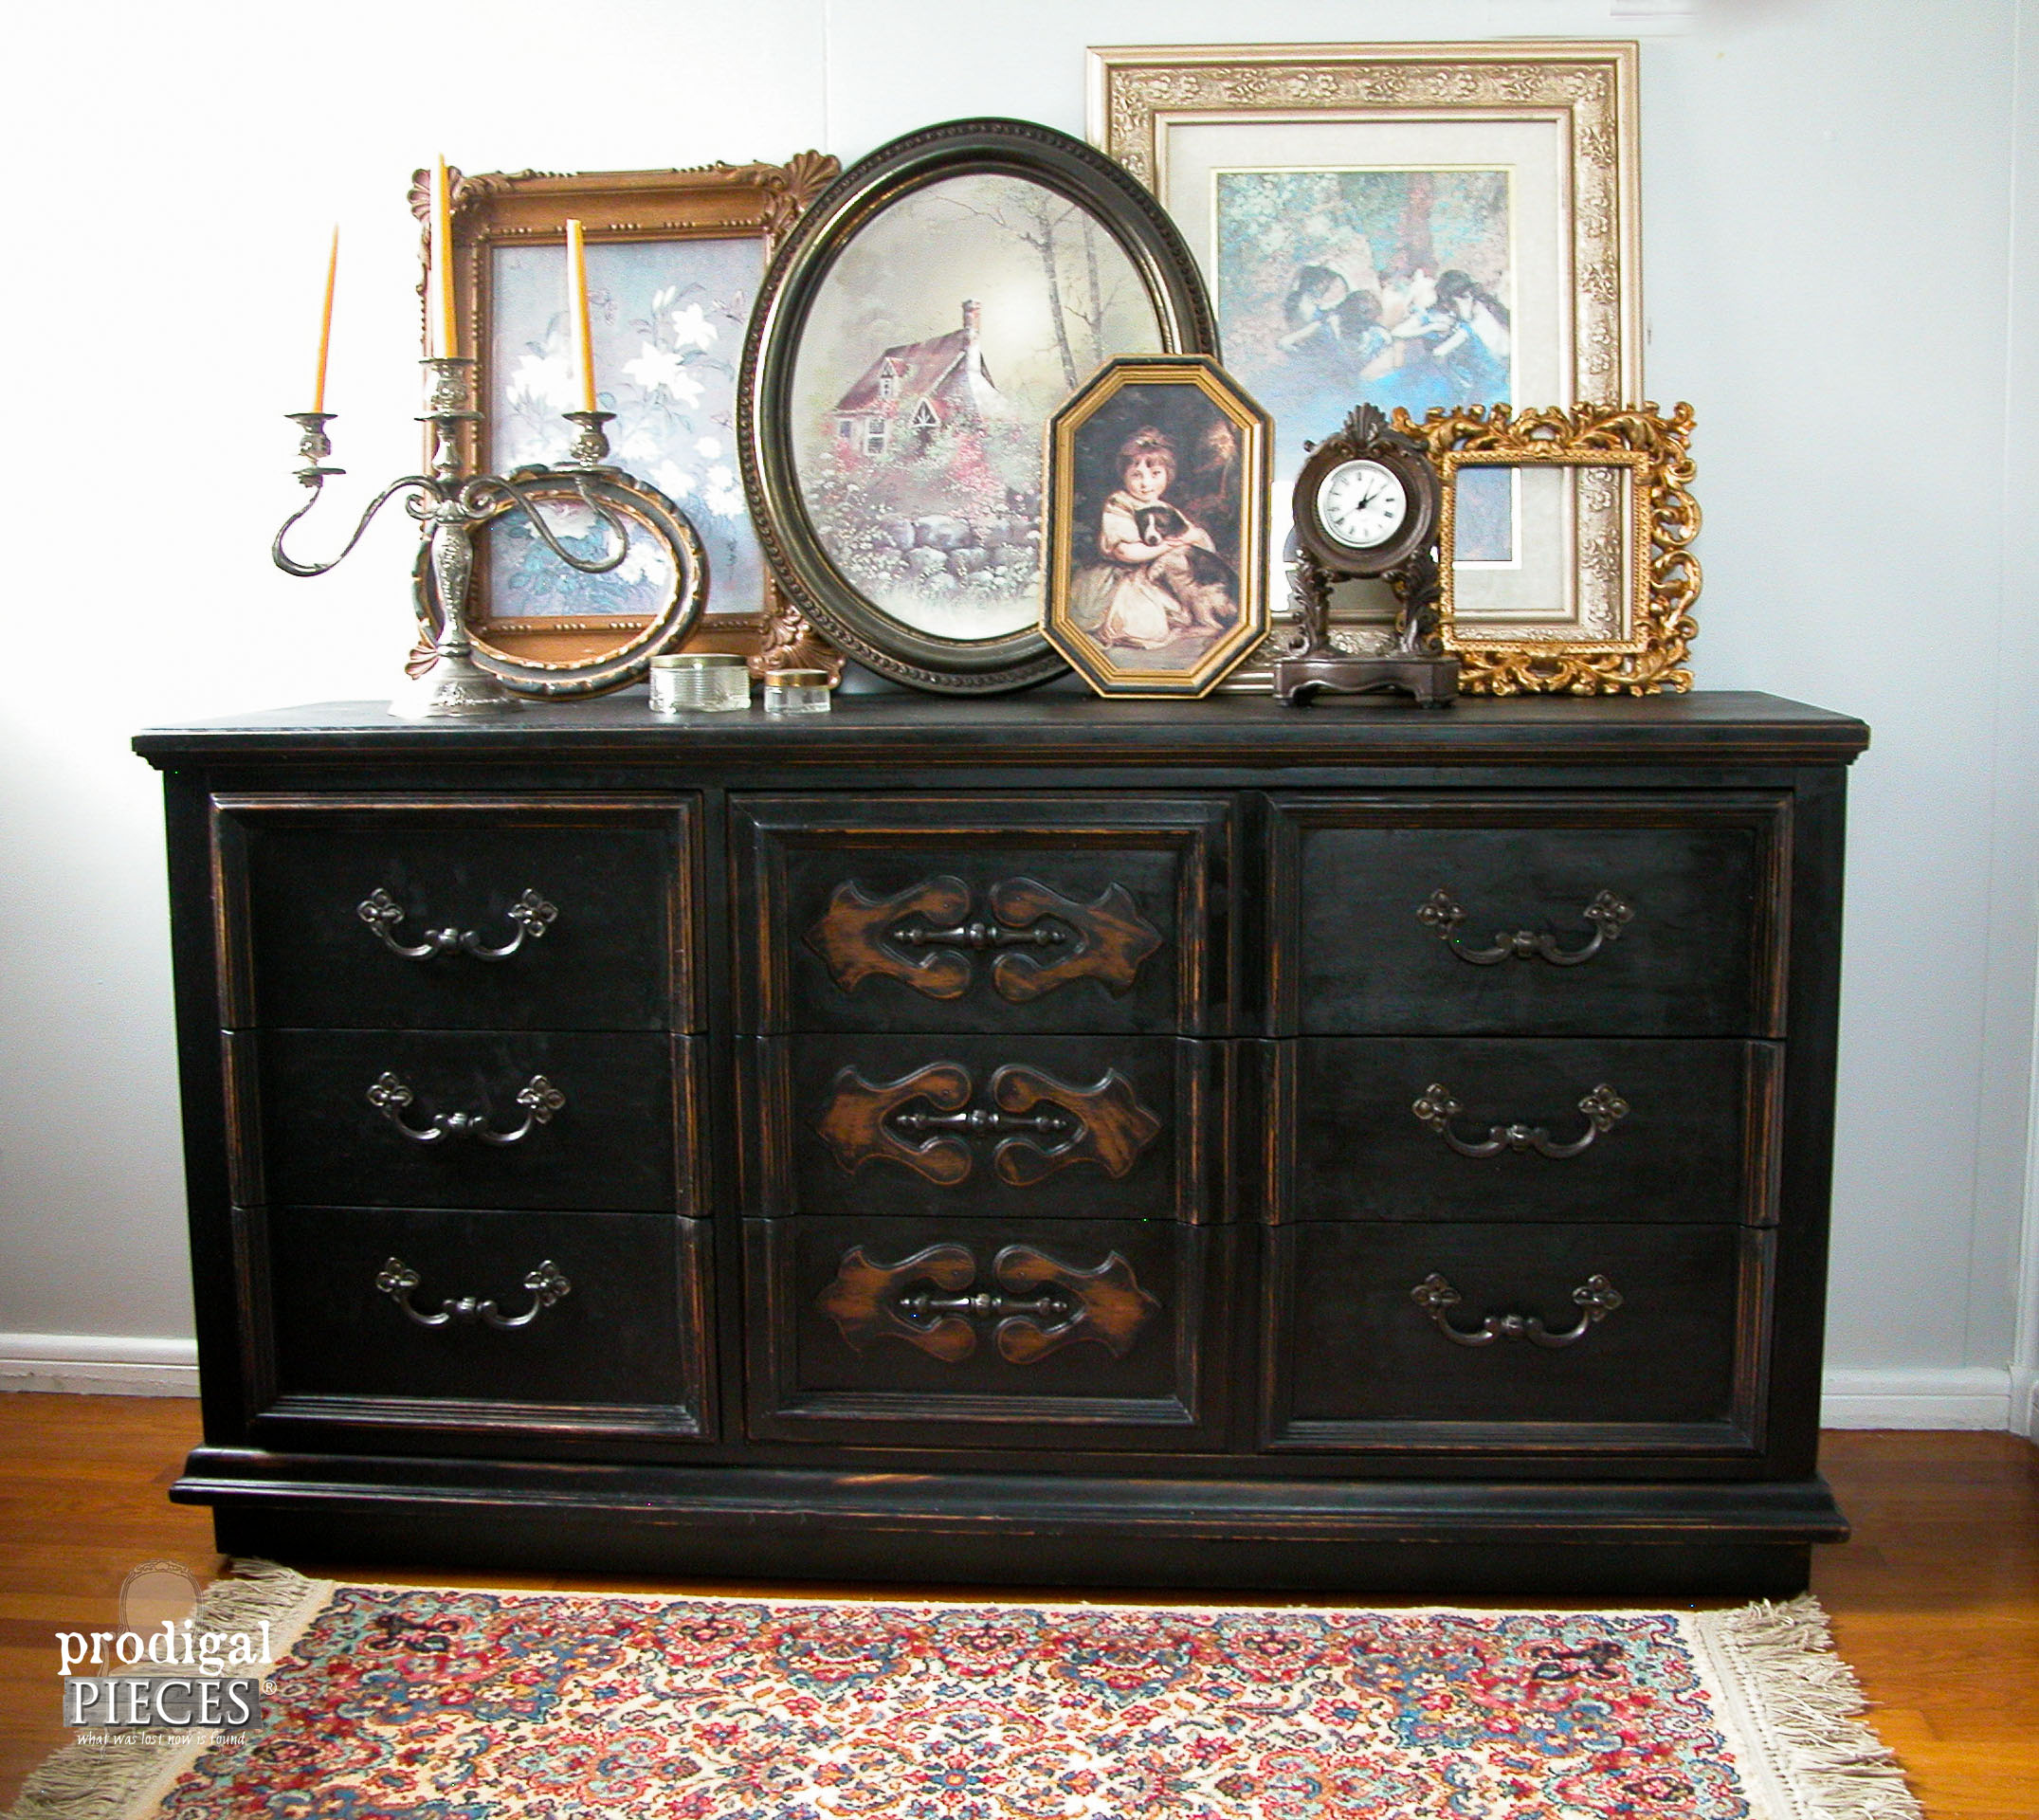 modern large best black dressers and for bedroom furniture sale of also ideas room mirror with craigslist faro drawers surprising by chest espirit white dresser